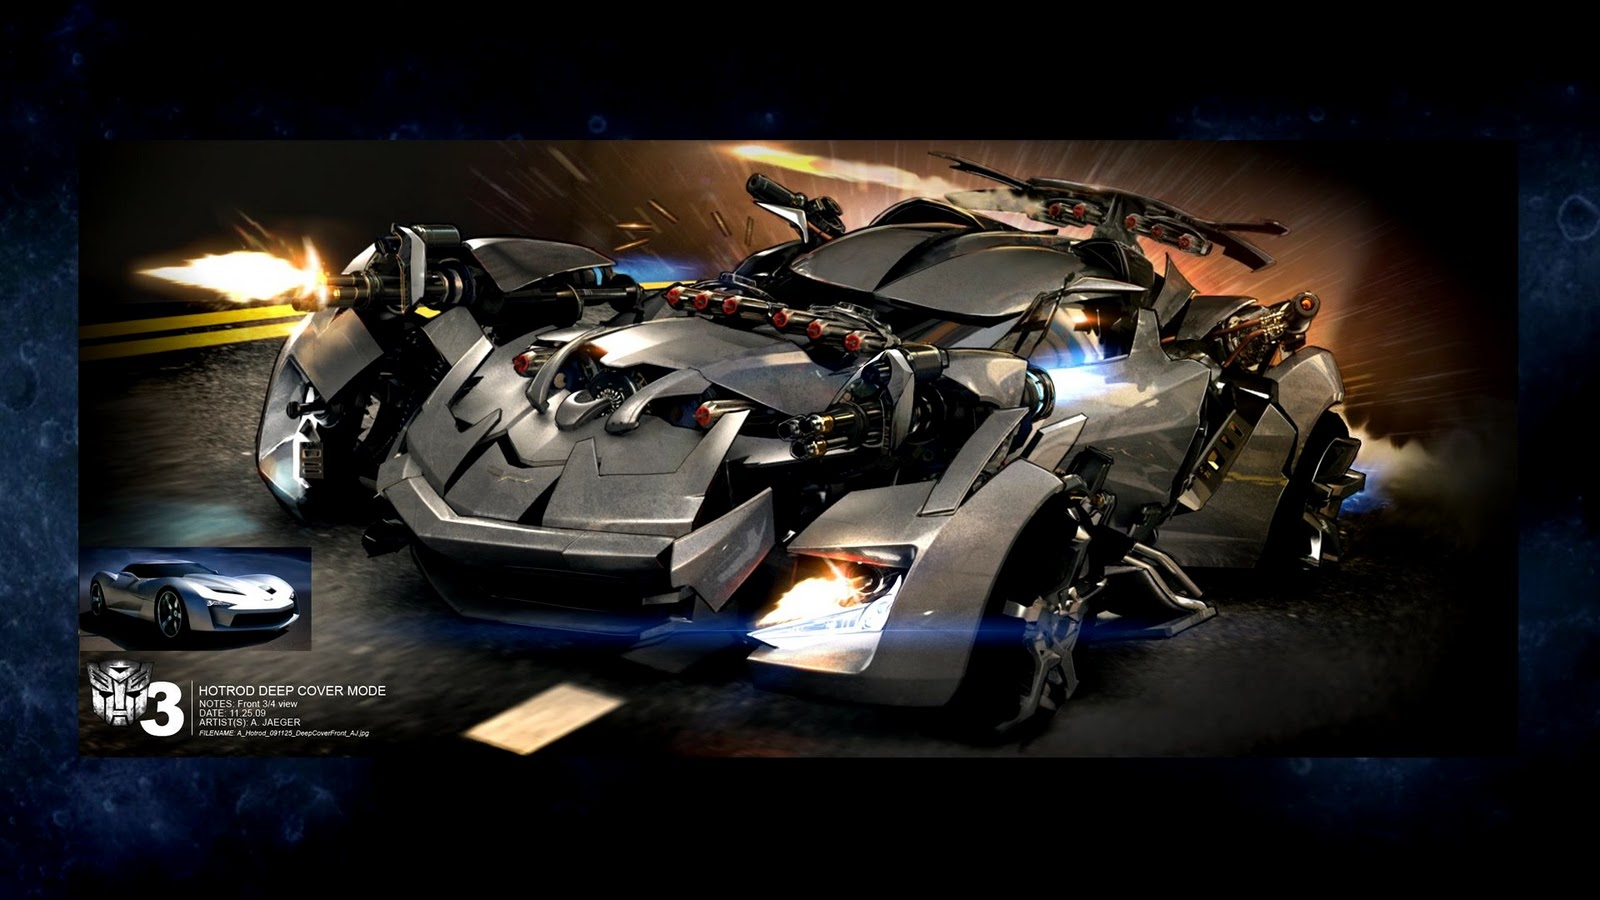 Hd Wallpapers Of Bumblebee Car Transformers News More Dotm Concept Art